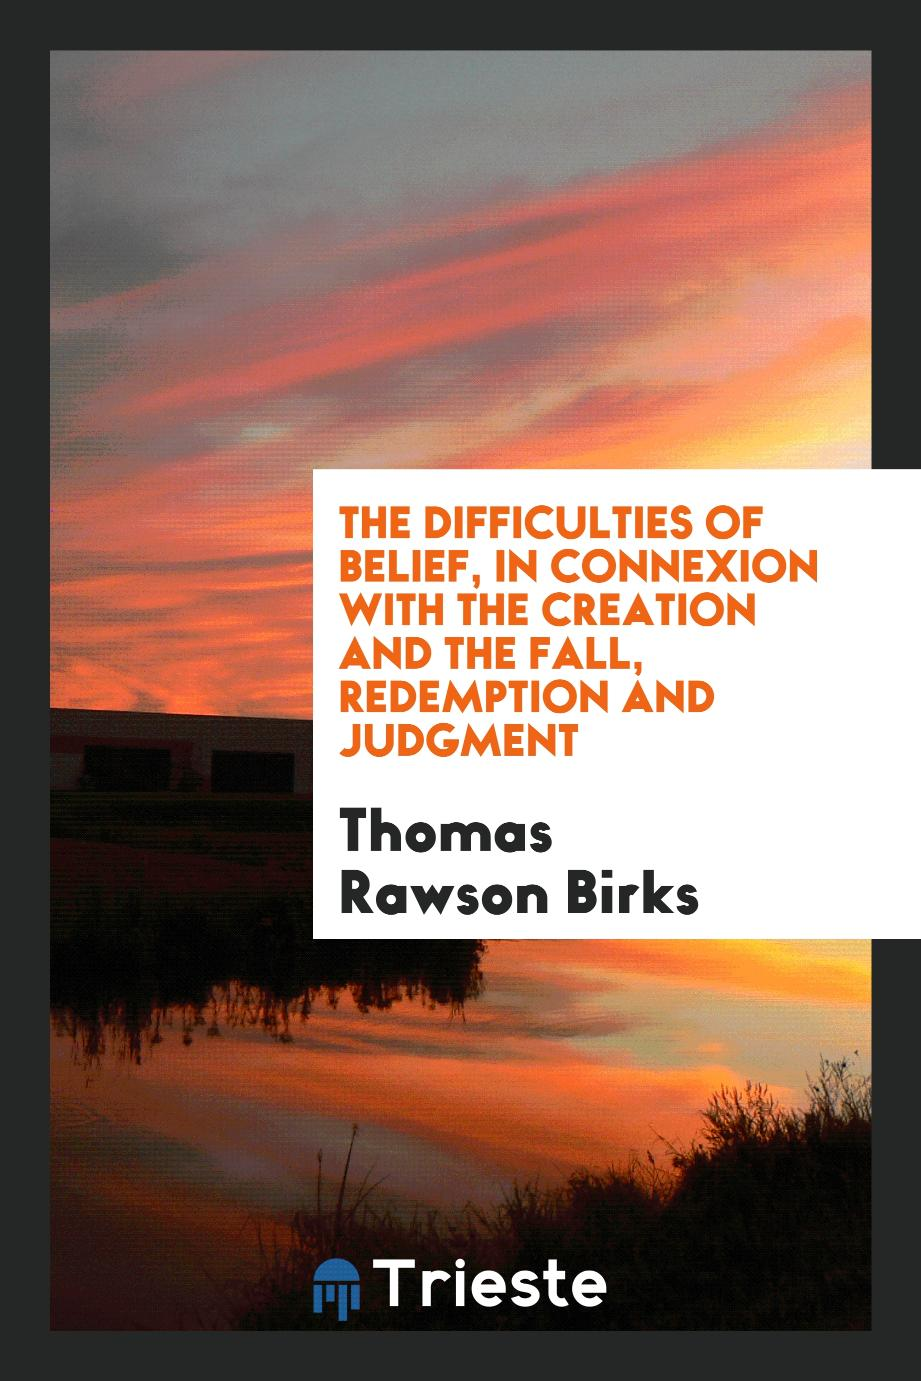 The difficulties of belief, in connexion with the creation and the fall, redemption and judgment